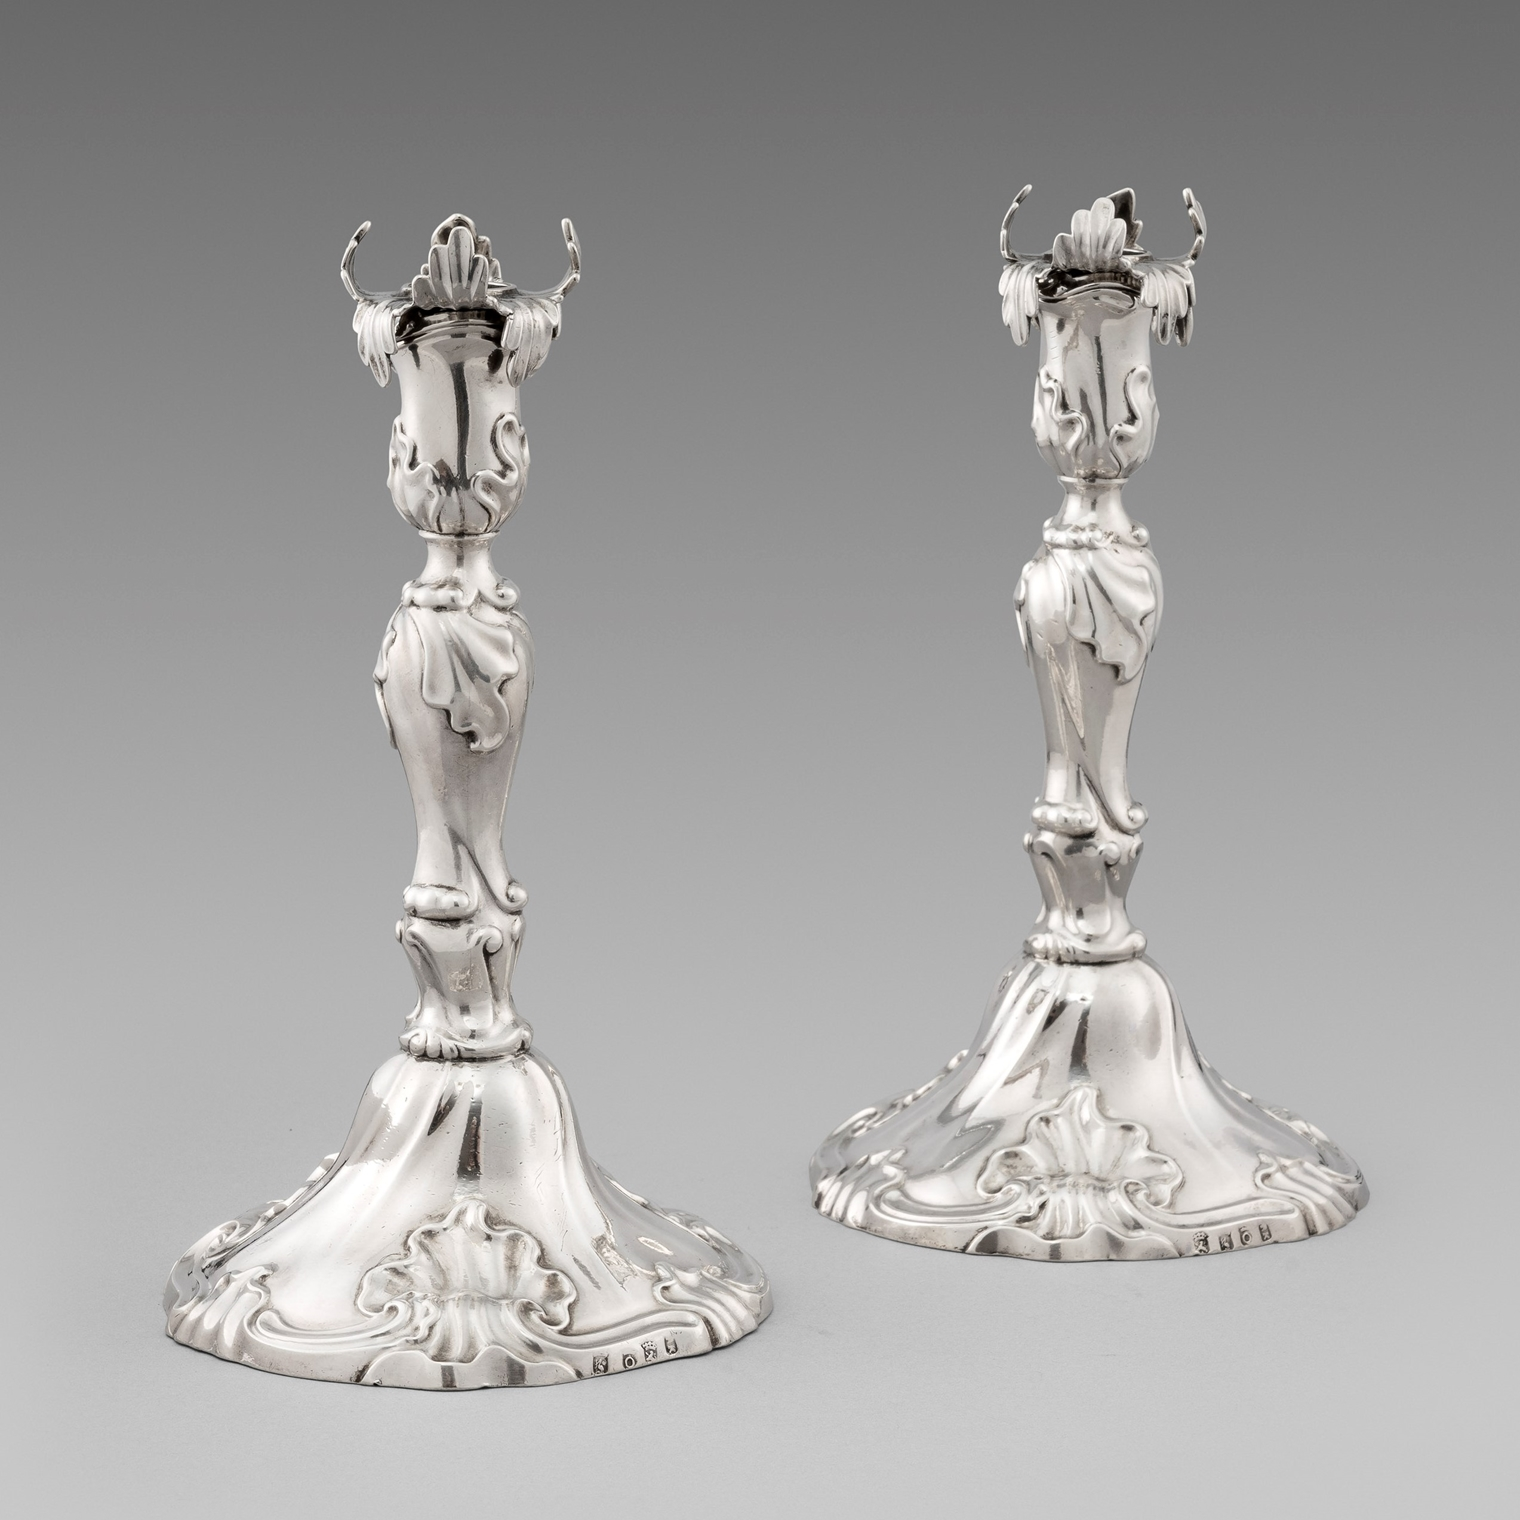 A Pair of 18th Century Dutch Candlesticks